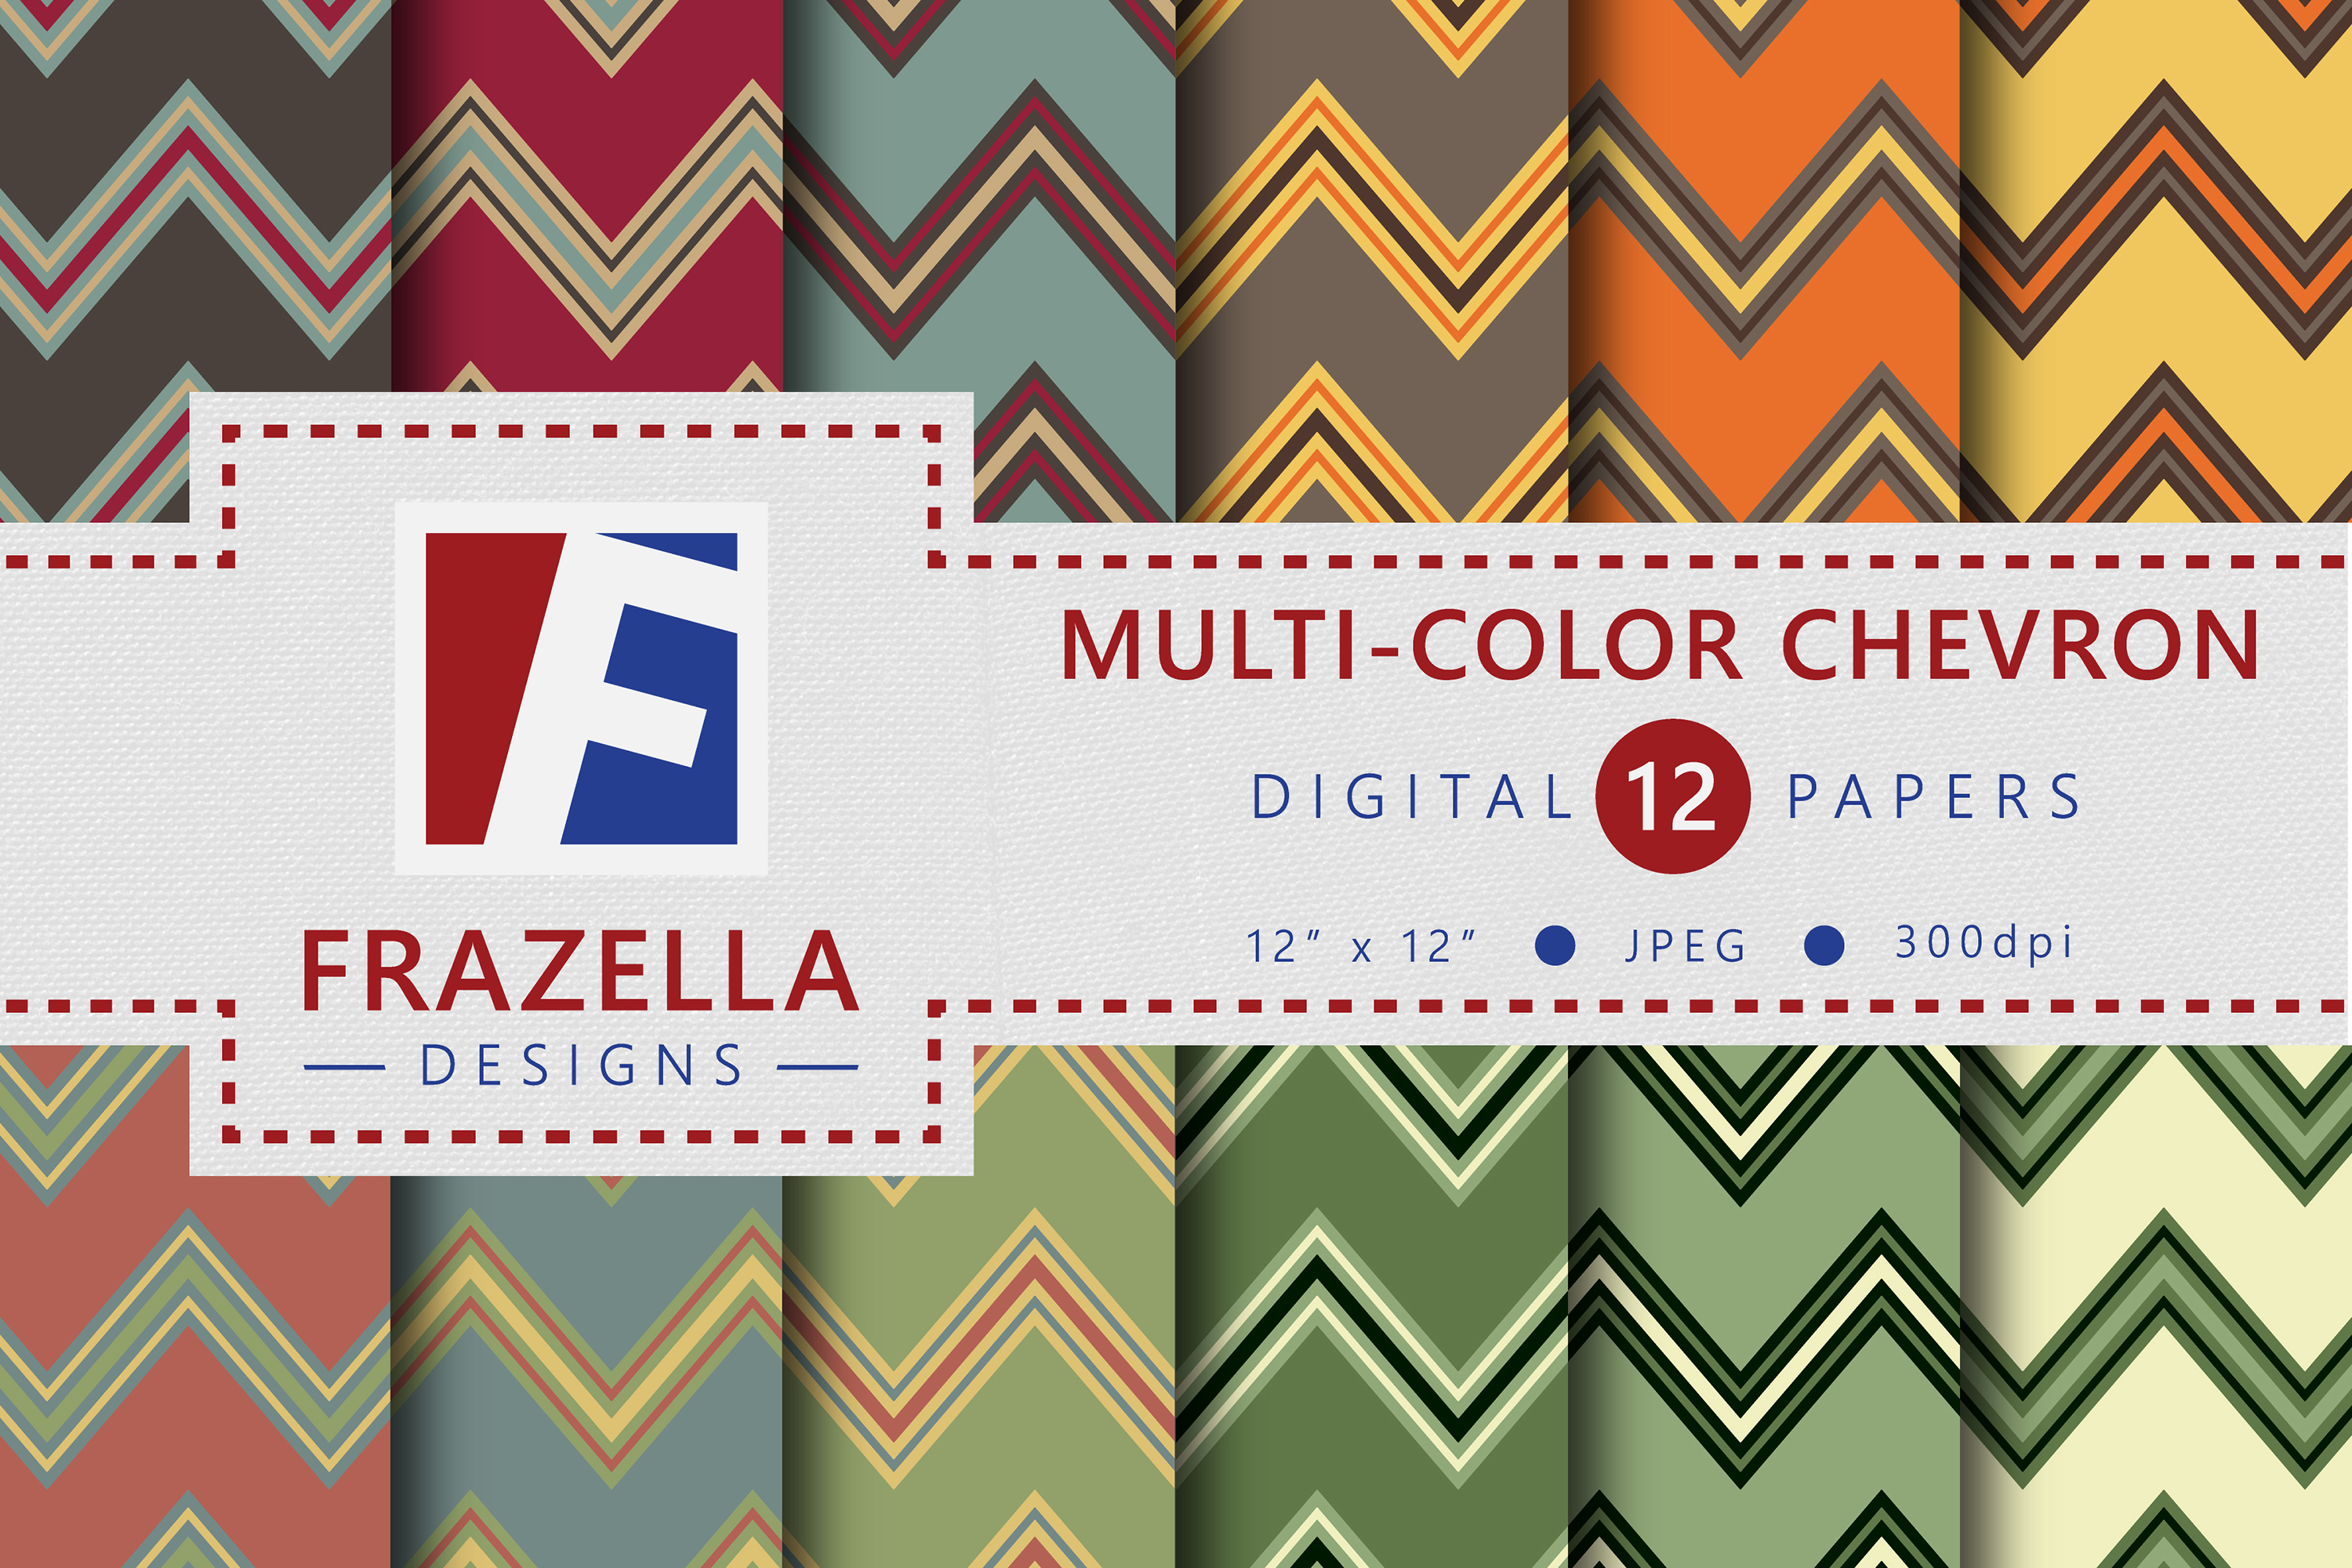 The ULTIMATE Digital Paper Collection Retro Edition Vol. 2. example image 5